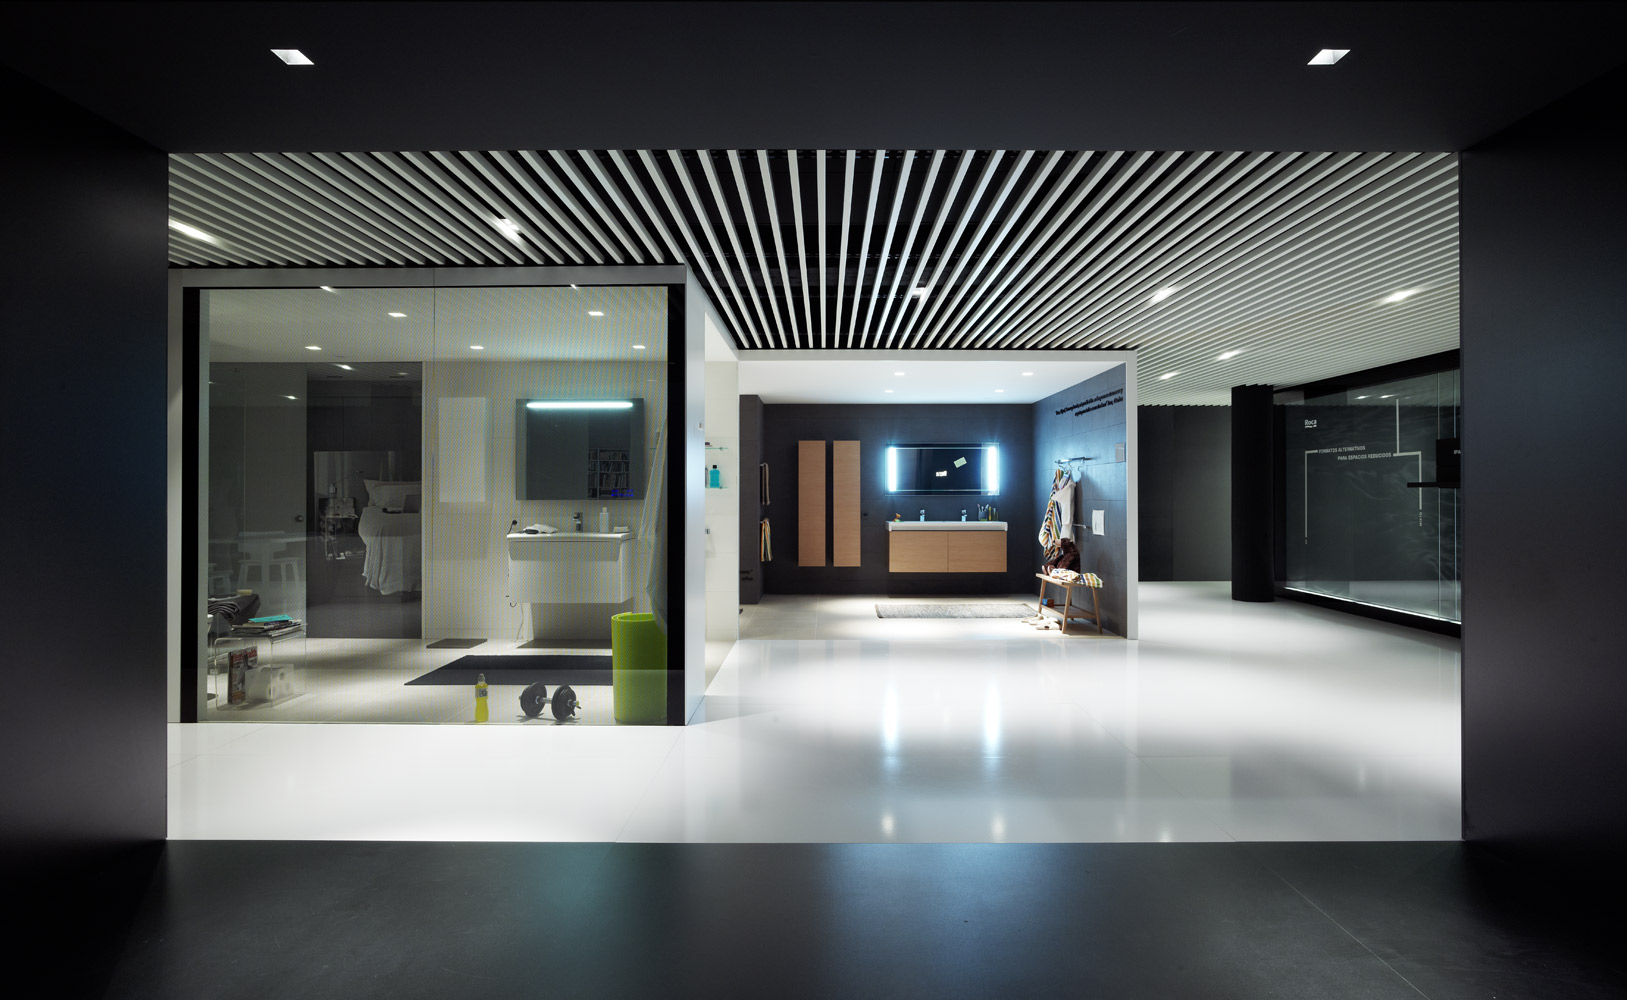 Francesc rif studio showroom roca turquesa for Roca showroom